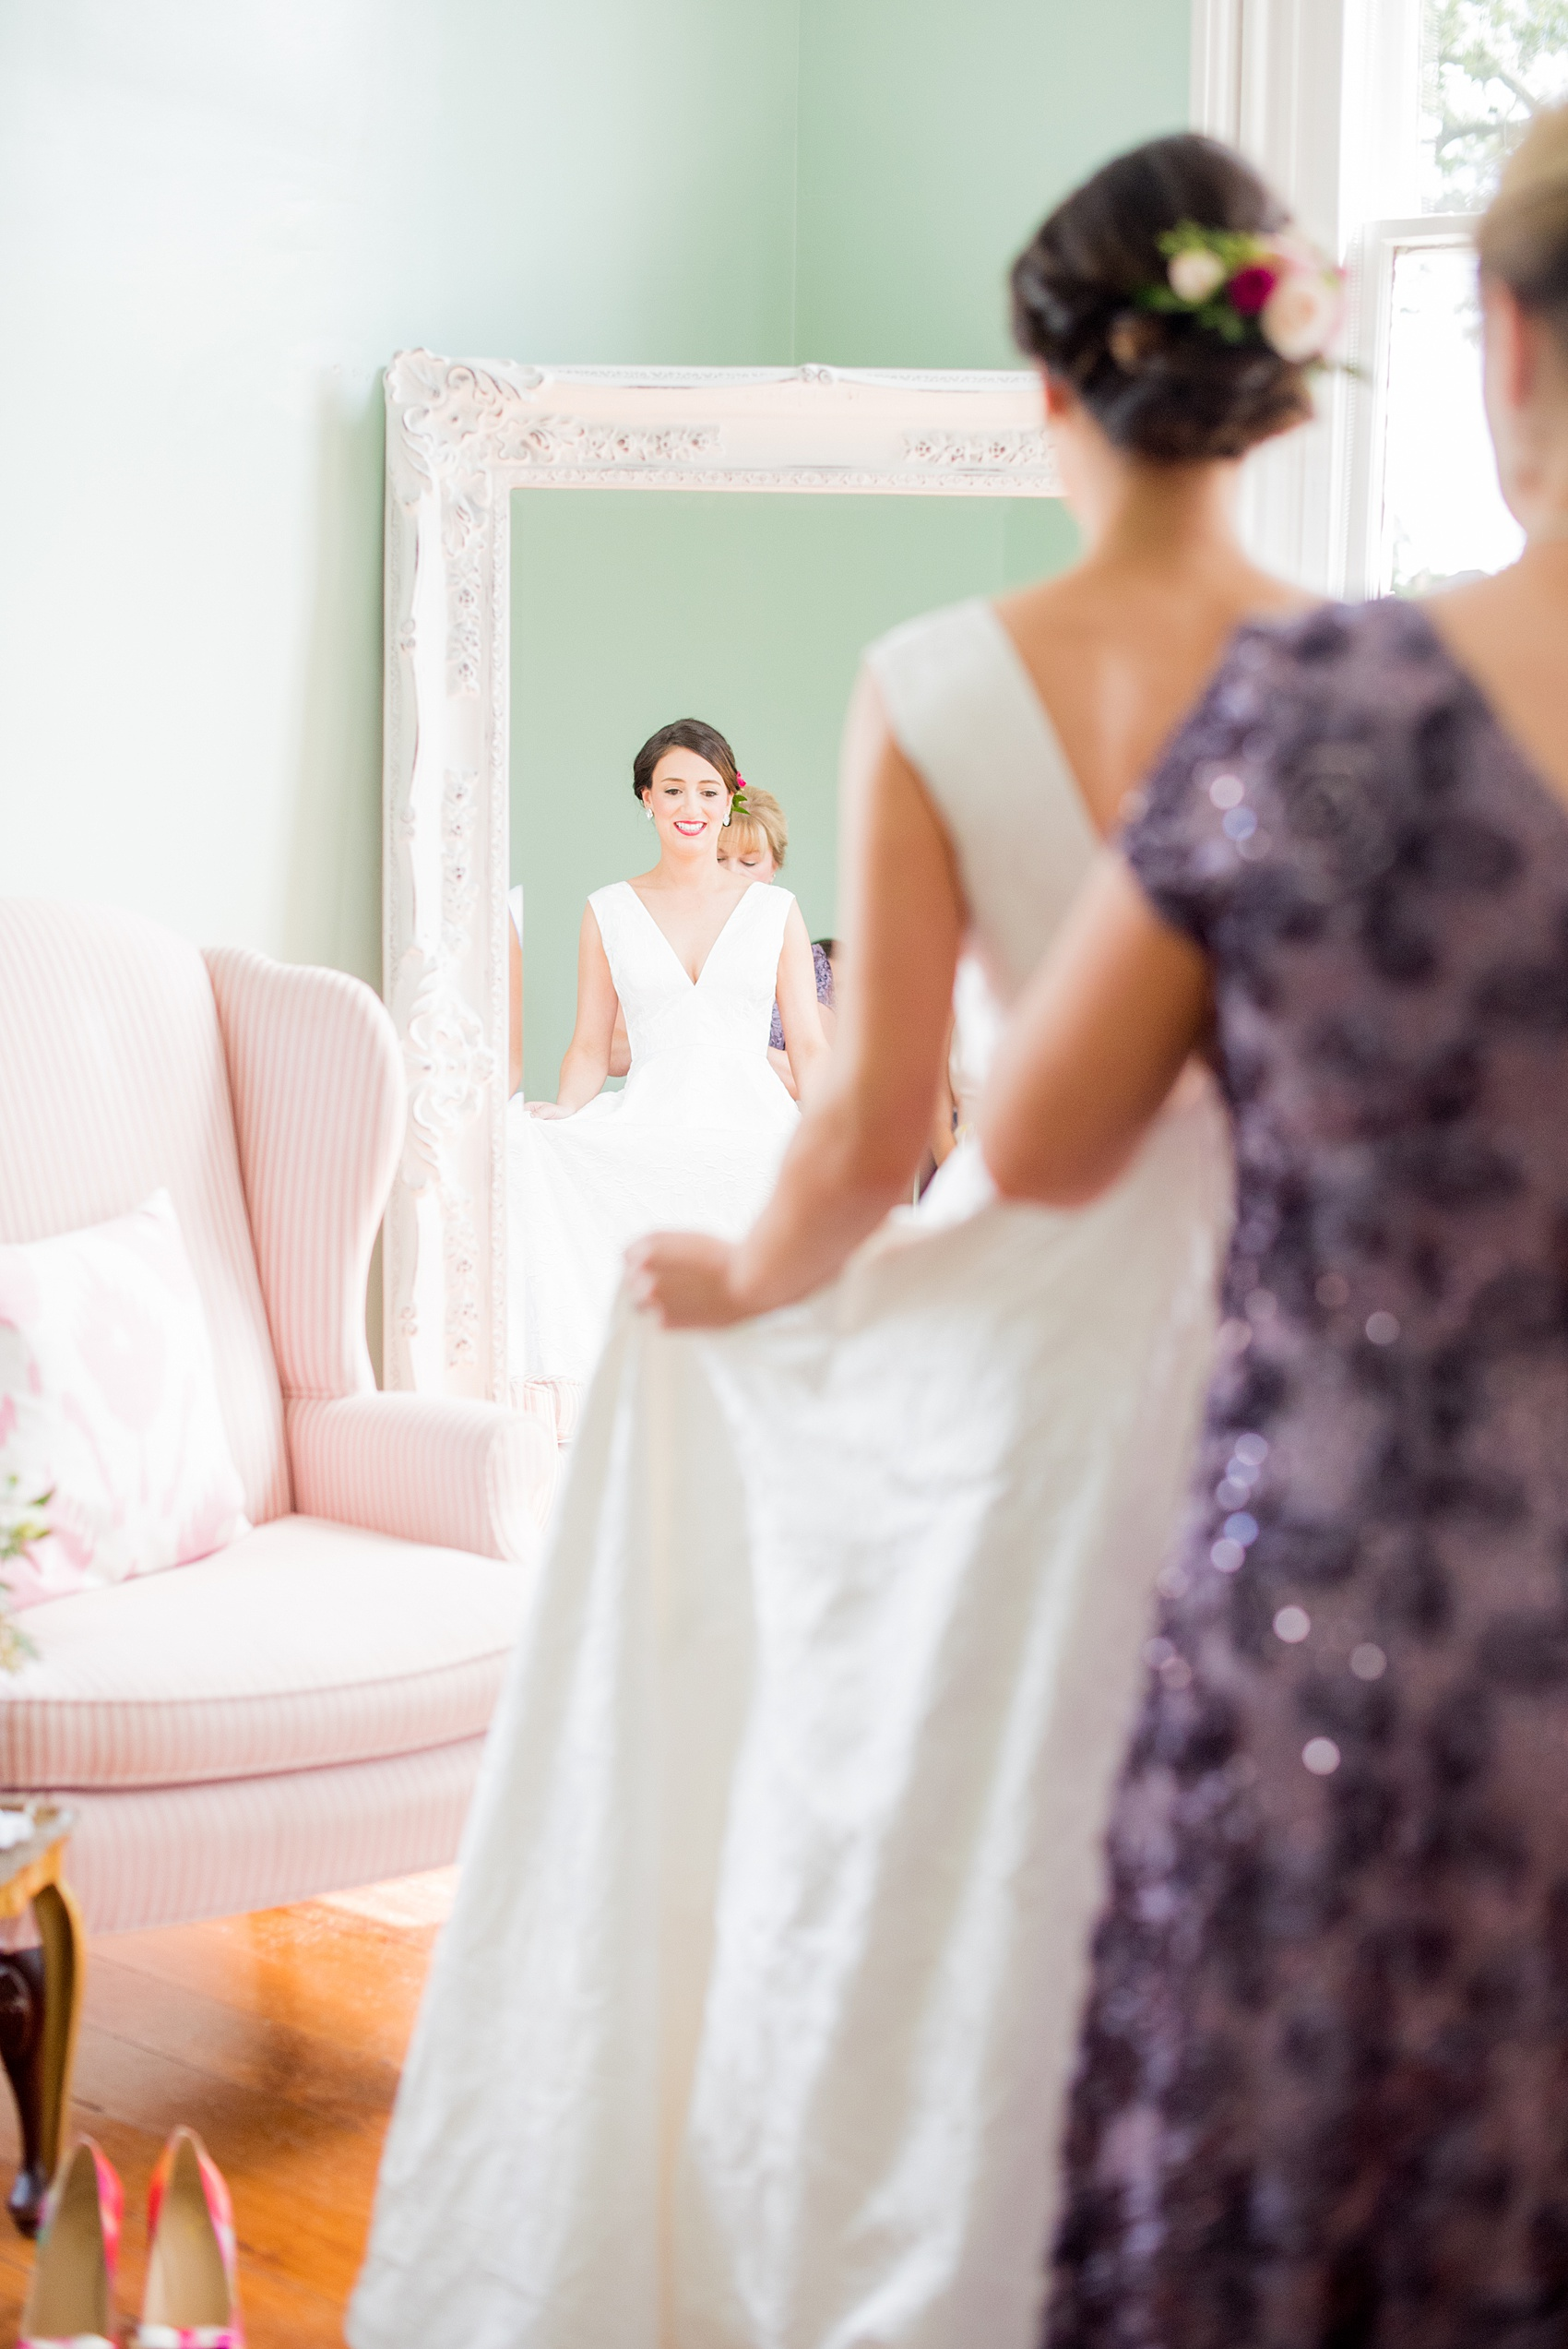 Mikkel Paige Photography pictures from a wedding at Merrimon-Wynne House in Raleigh, NC. Photo of the bride reflecting in a mirror in the bridal suite as her mother helps her get ready.